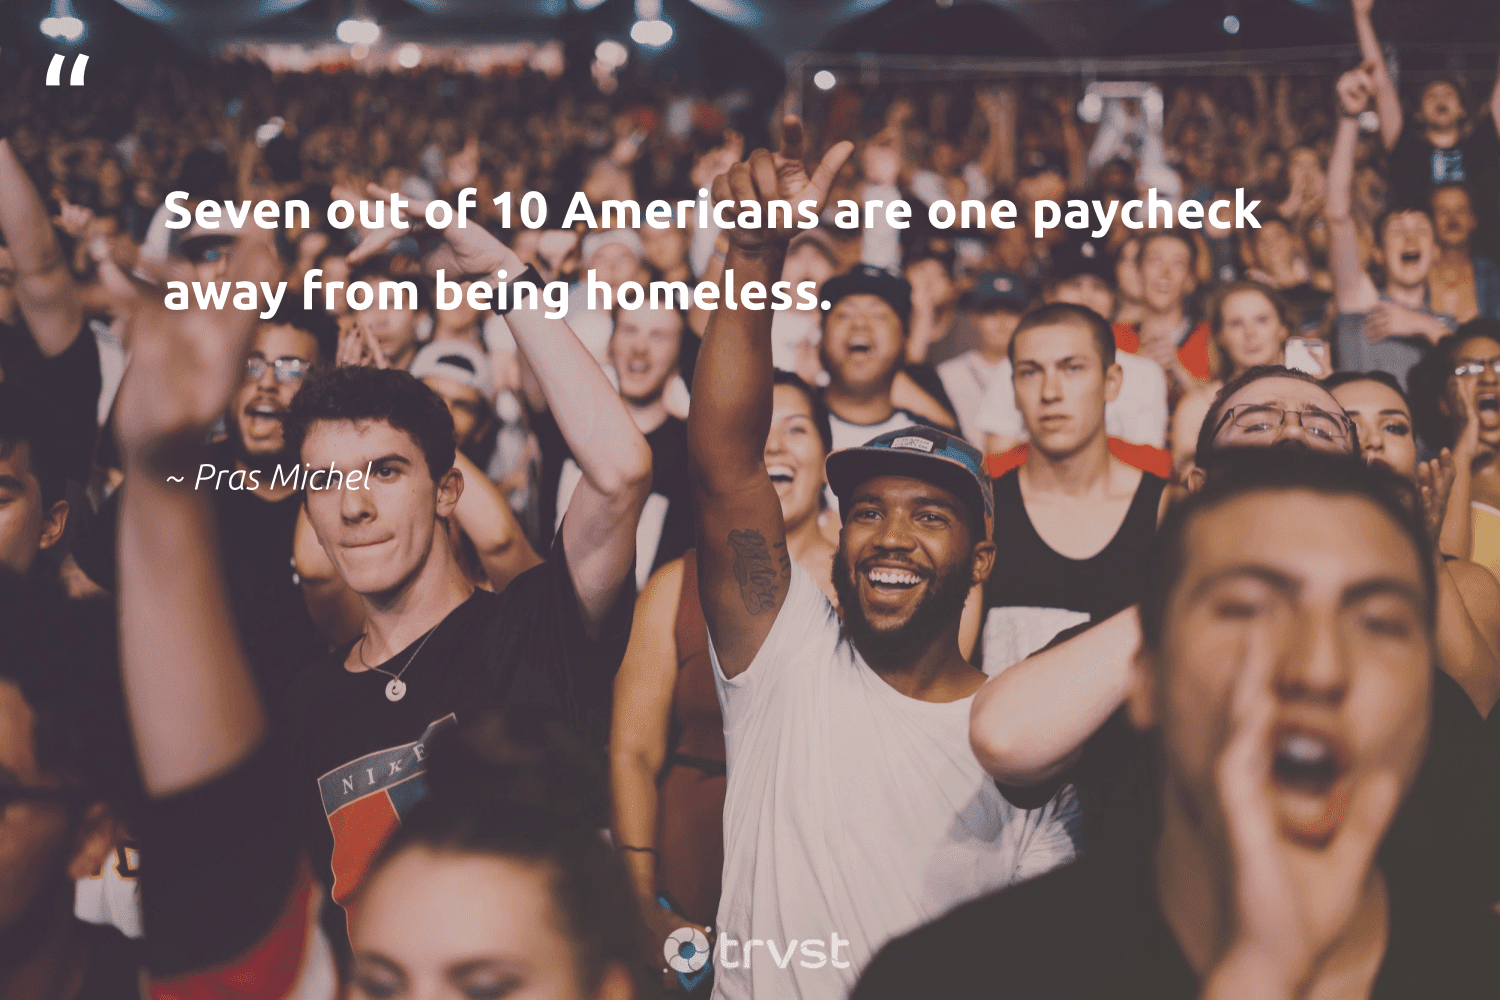 """""""Seven out of 10 Americans are one paycheck away from being homeless.""""  - Pras Michel #trvst #quotes #homelessness #homeless #equalopportunity #inclusion #dosomething #makeadifference #sustainablefutures #dotherightthing #equalrights #weareallone"""